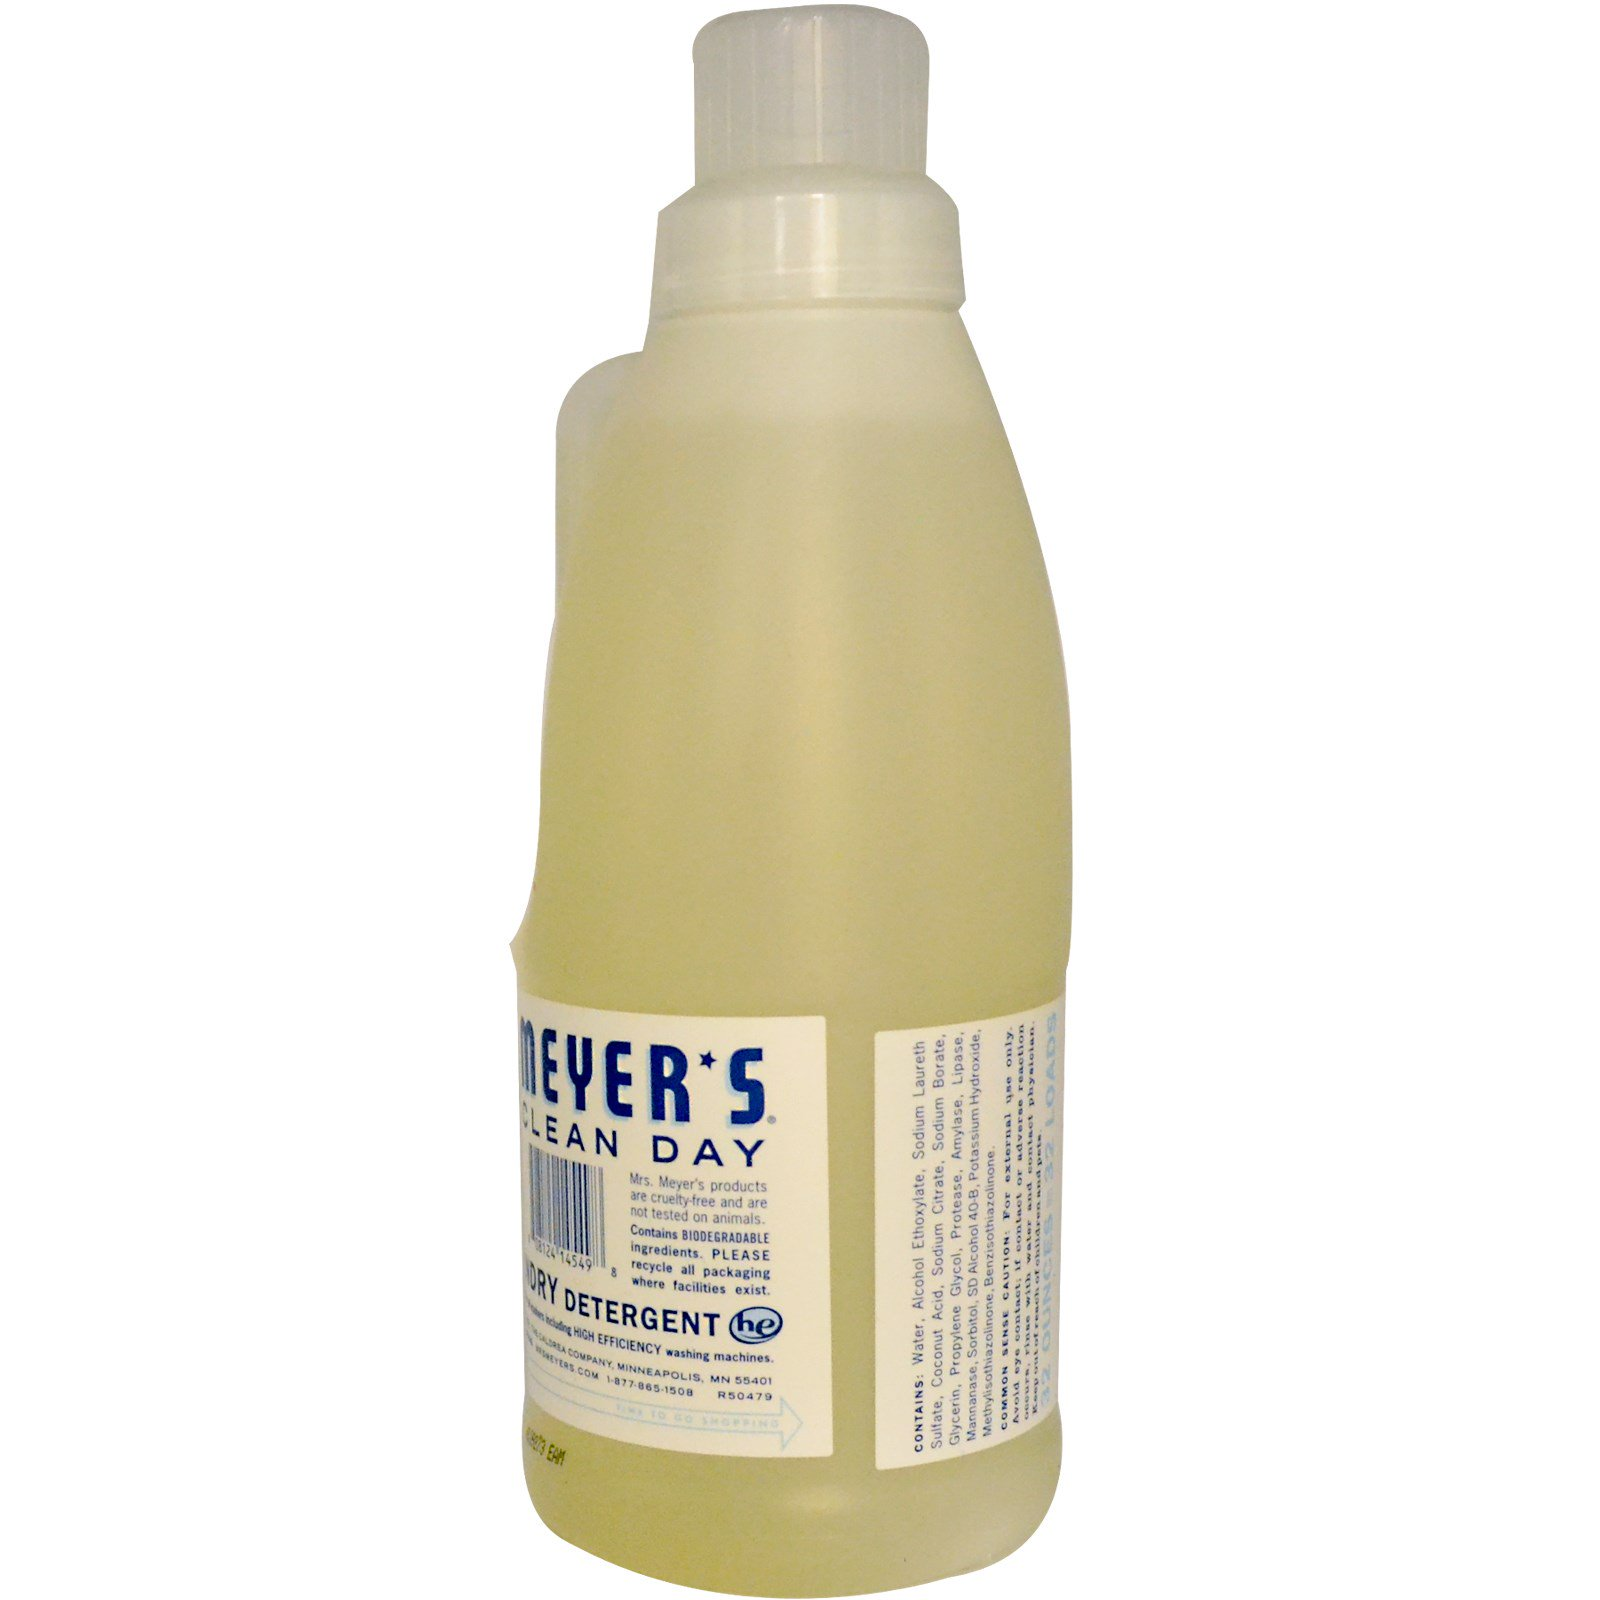 Mrs  Meyers Clean Day, Laundry Detergent Concentrated, Scent